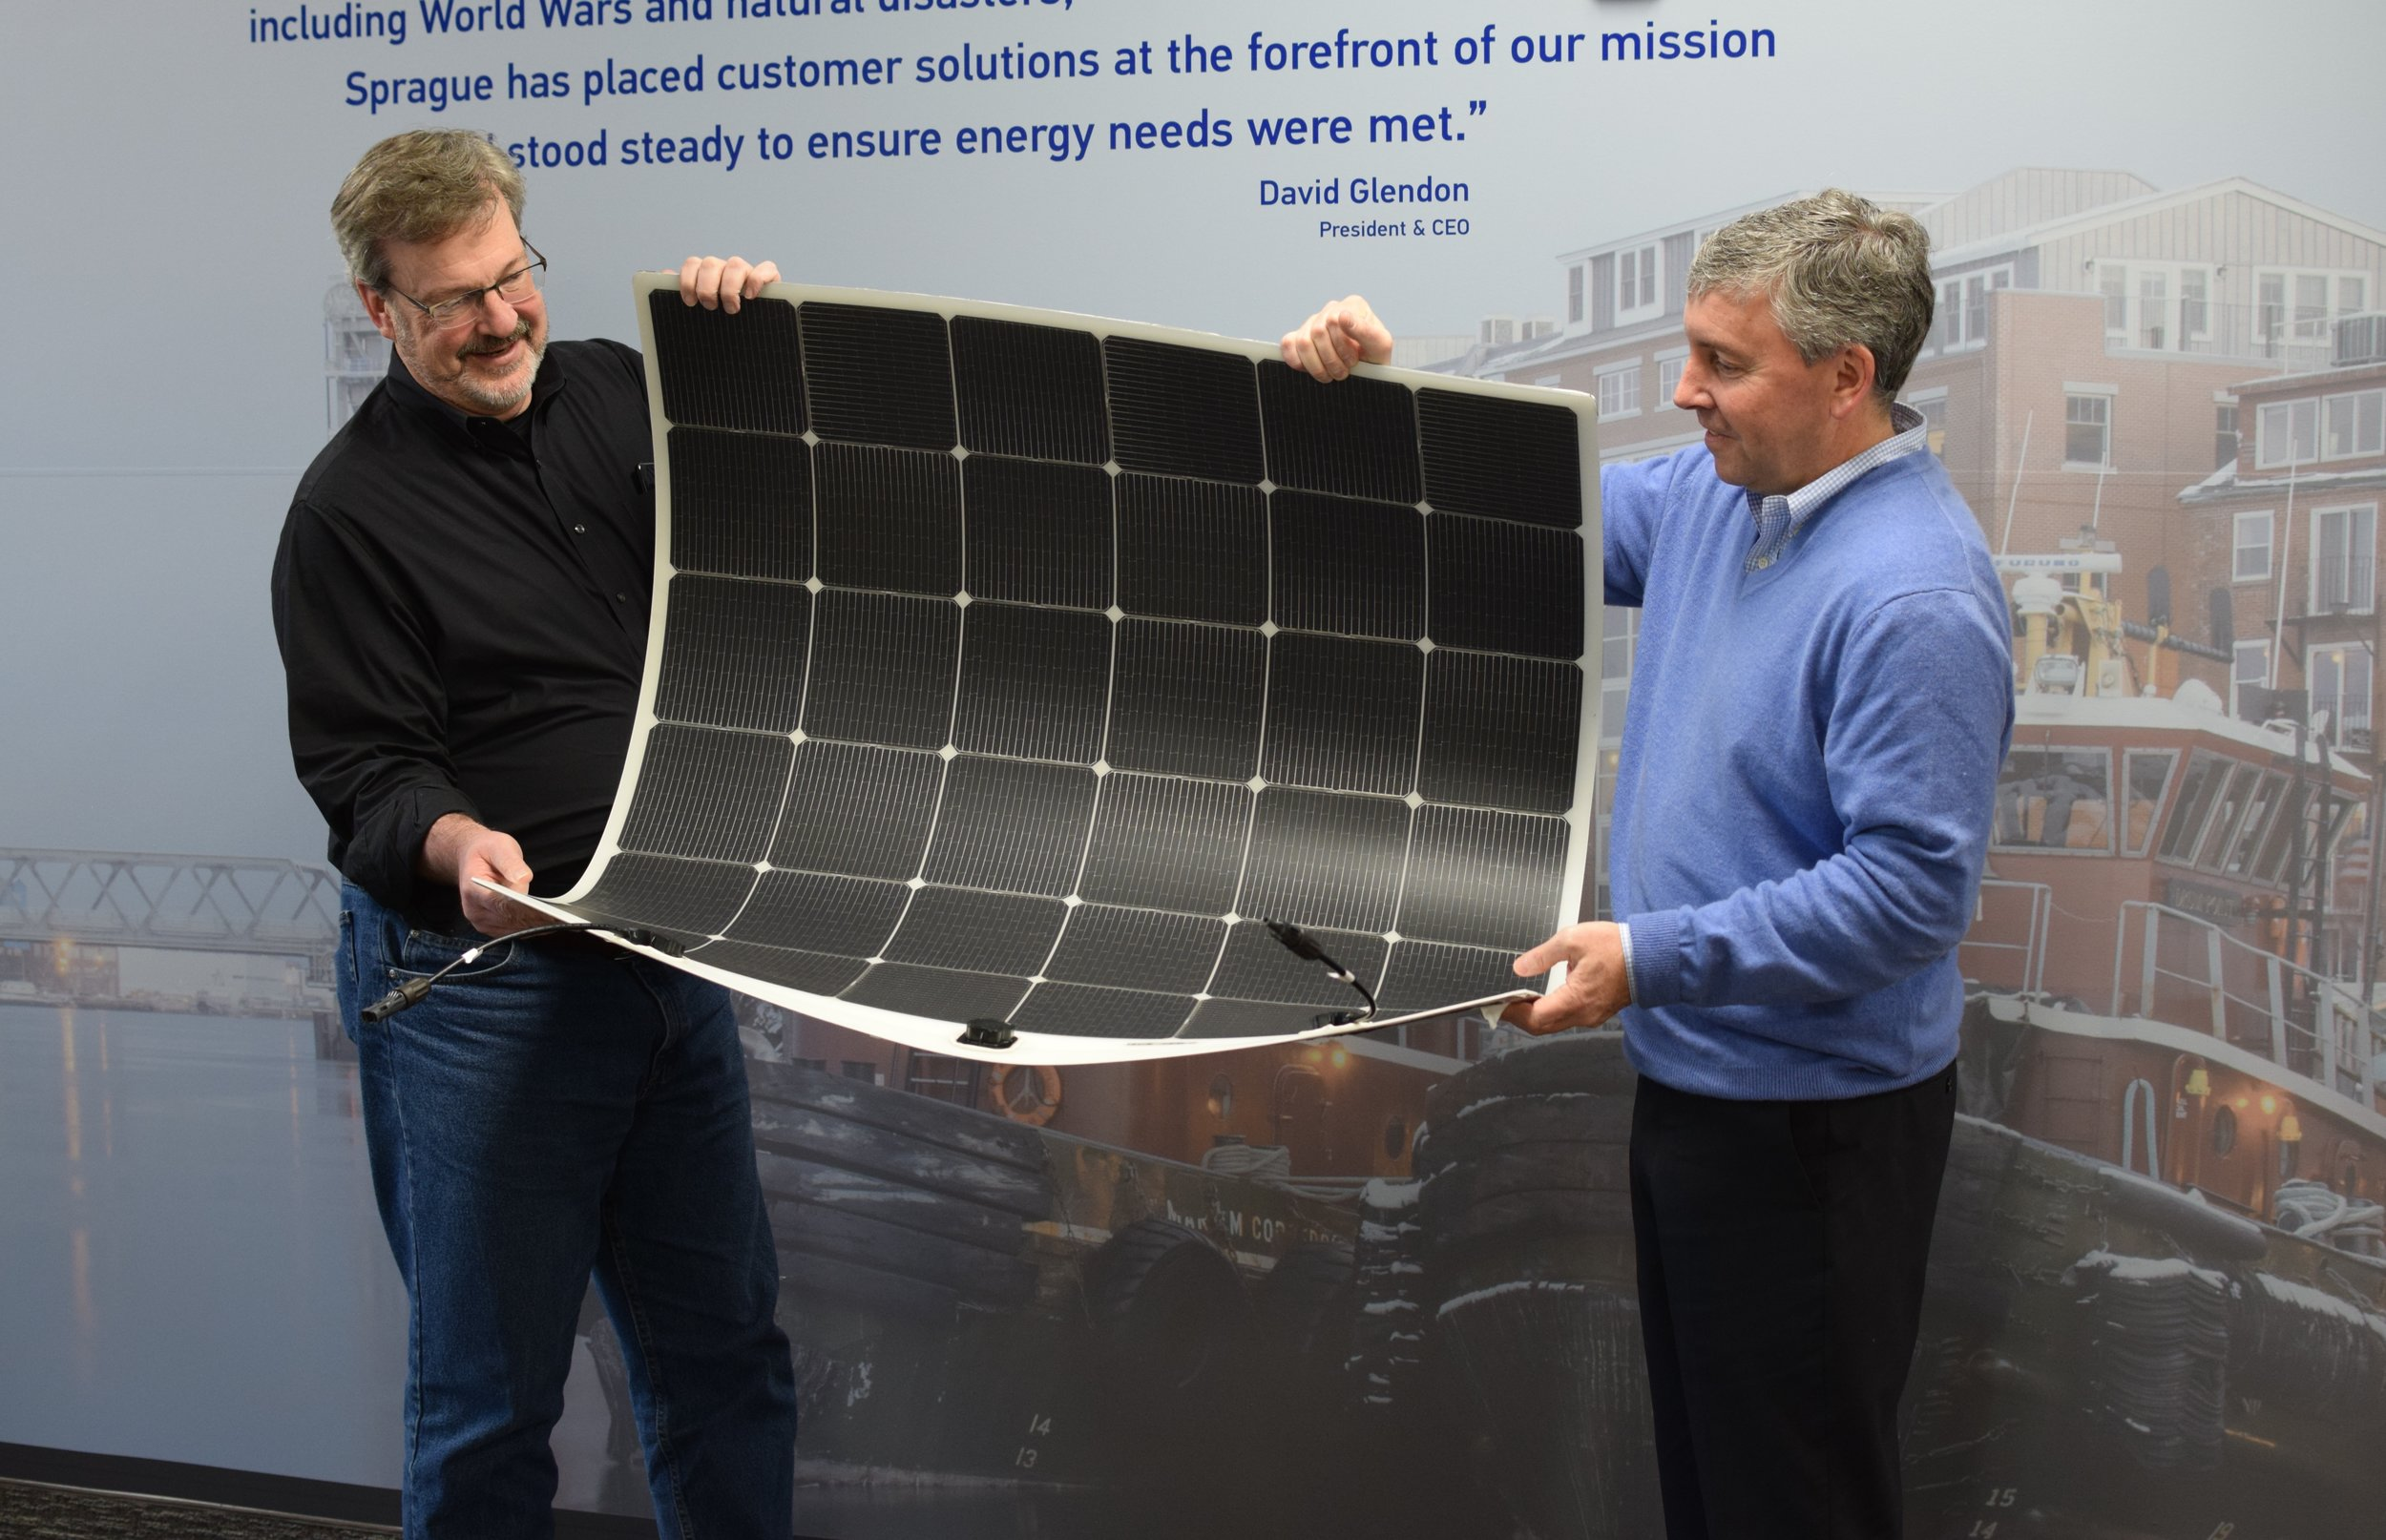 Kevin Maloney, CEO of Picktricity, and David Glendon, CEO and President of Sprague hold one of the solar panels applied to Sprague's South Portland, Maine, terminal tank. The panels are thin, durable, flexible and lightweight, and are closer in size and weight to an all-weather floor mat than to traditional heavy solar panels. Weighing in at under five pounds for a 4'x4' section, the panels can be directly applied to flat surfaces, and are significantly lighter than traditional panels, which also require the additional weight of racks and bolts for installation.